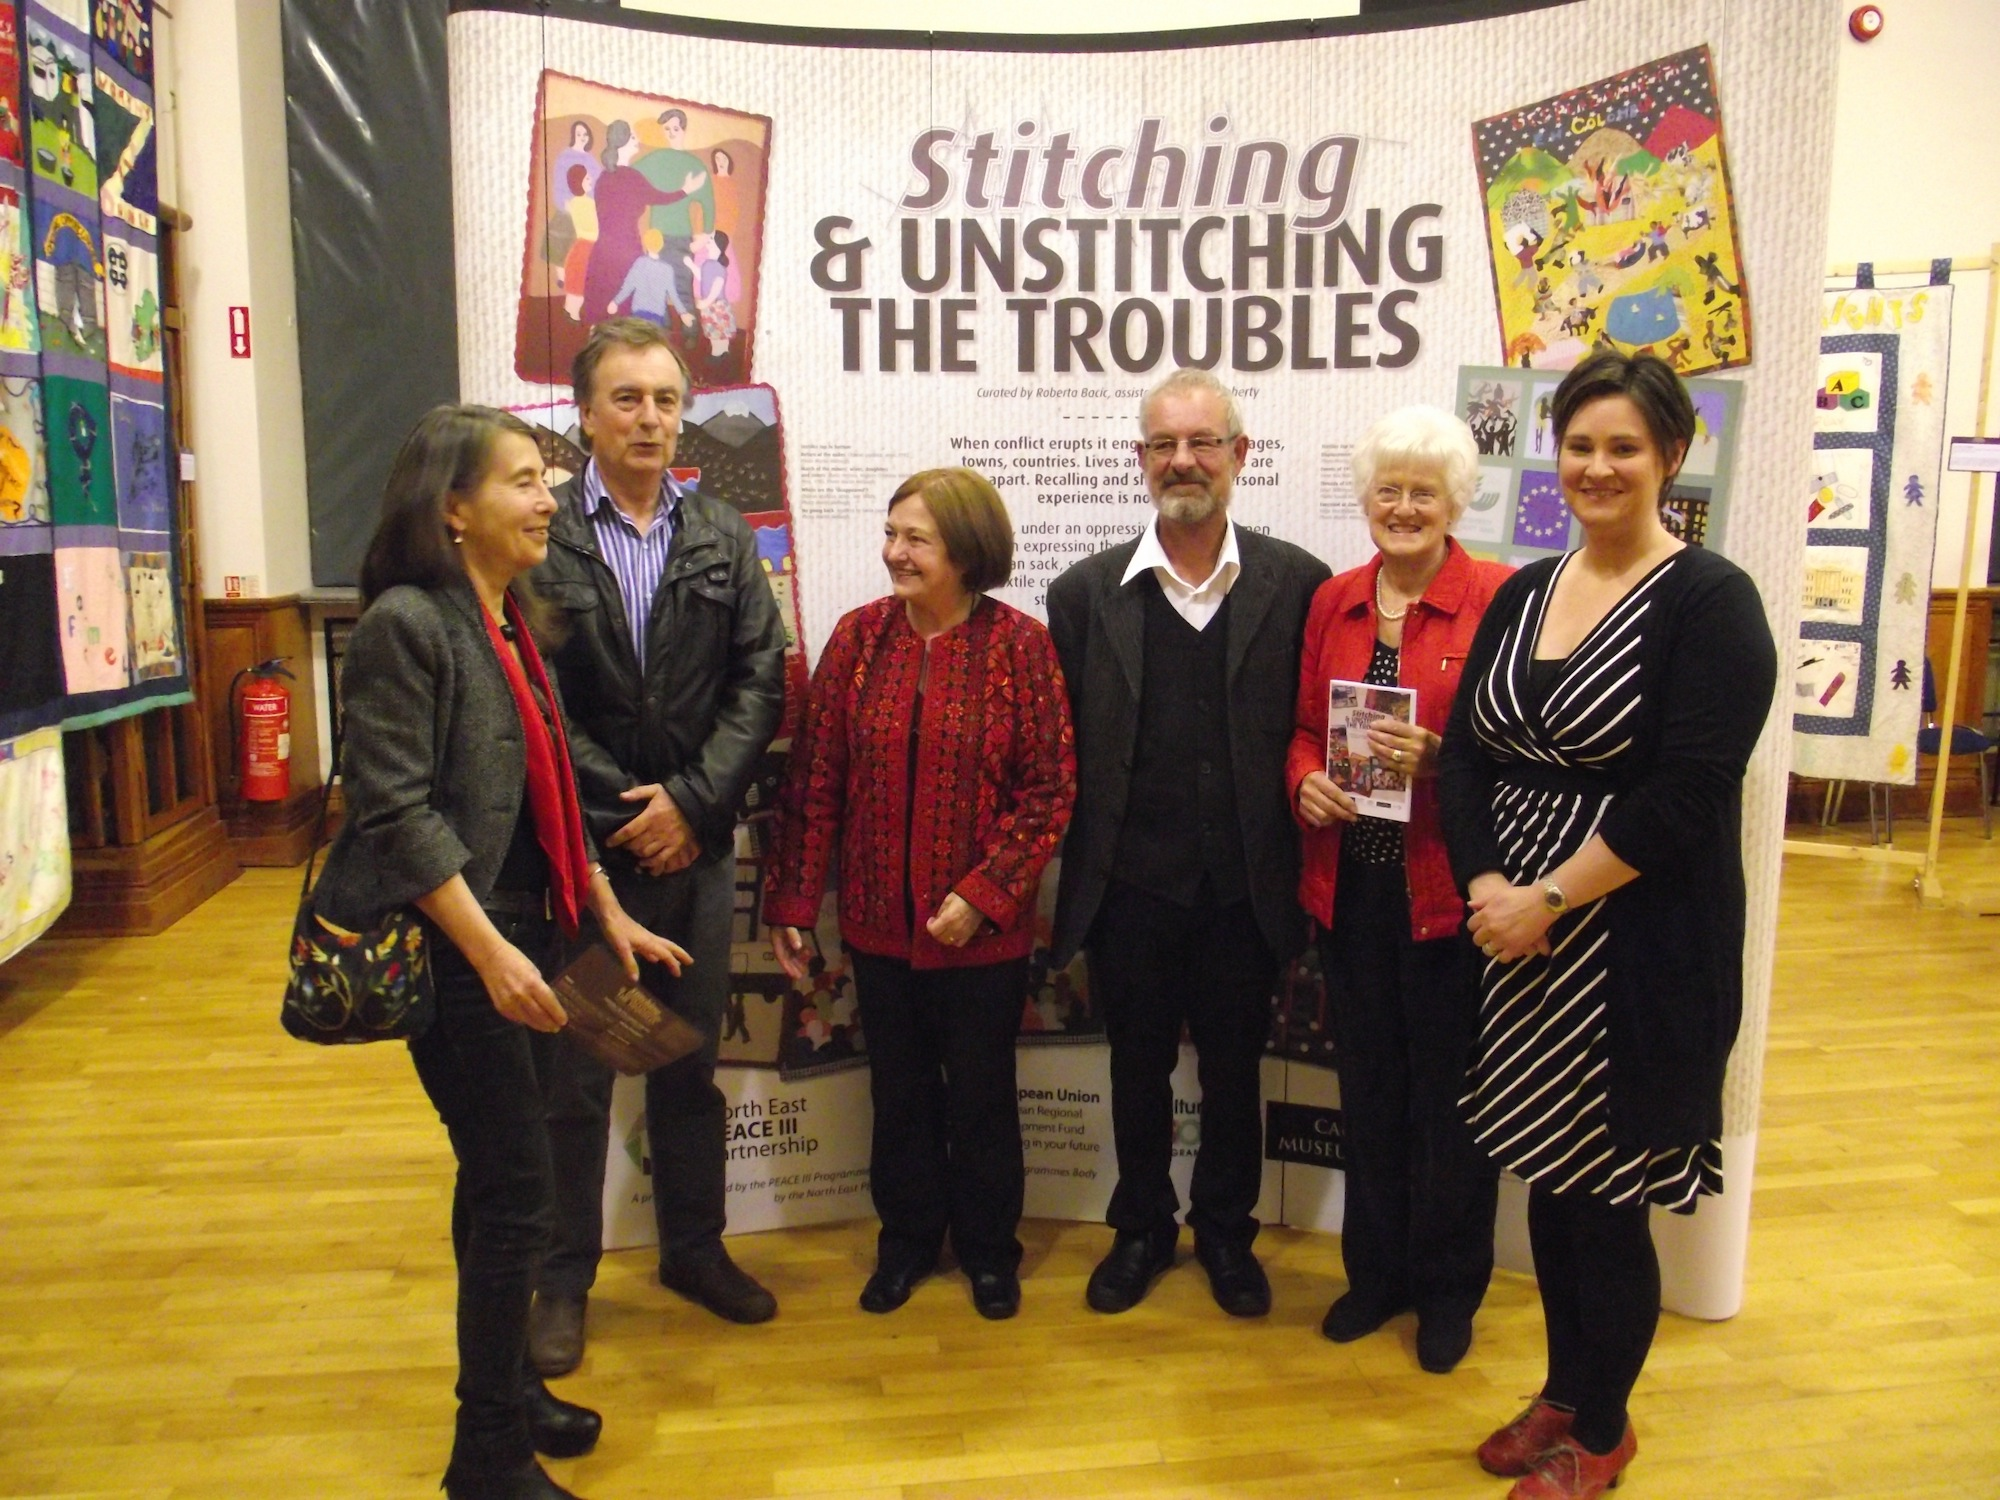 stitching & unstitching the troubles